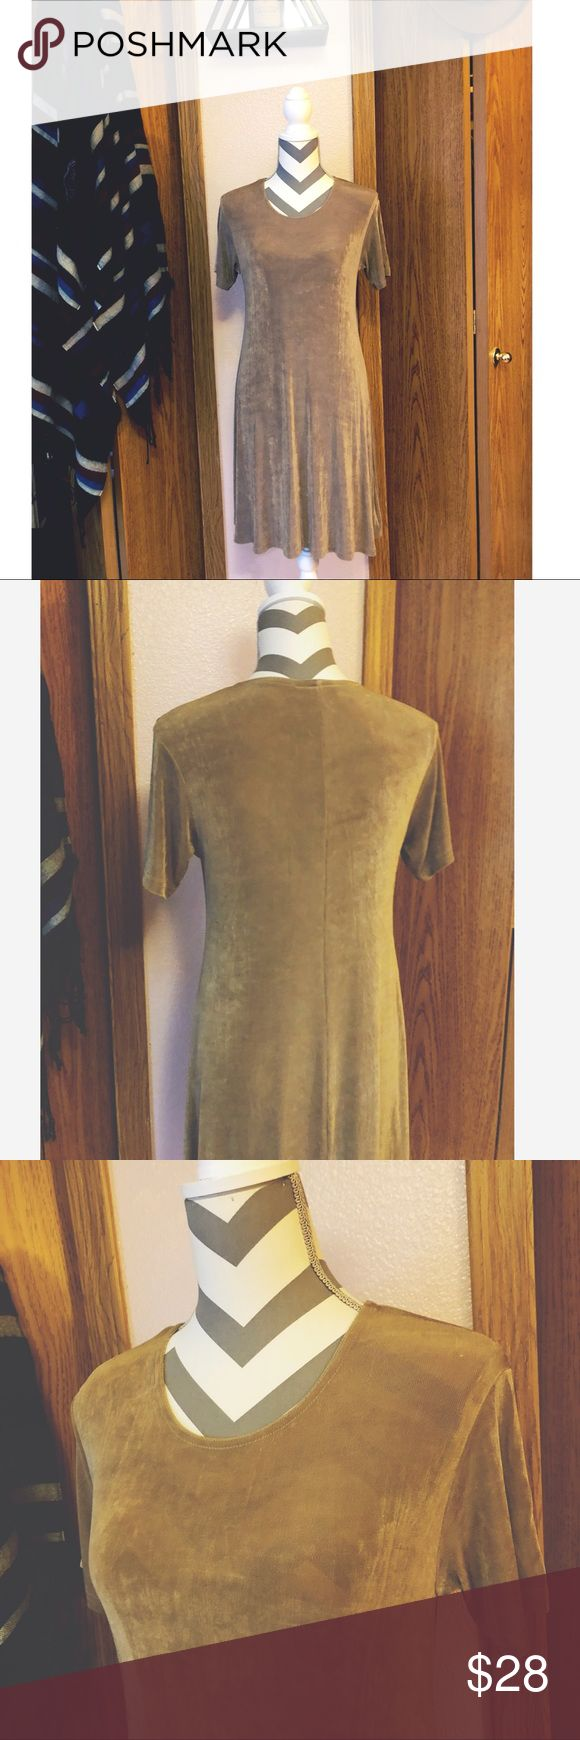 """•Vintage 90s/ Tan Mini Slinky Dress• So 90s🦋 So cute! 90s slinky mini dress. In great vintage condition. It's a neutral pretty tan color. Very """"Slinky"""" has a lot of bounce. Dress up or down! Tag size M, true to size (with stretch)   •92% Acetate & 8% Spandex   •LENGTH/ 36"""" long  •BUST/ 36"""" around  •WAIST/ 34"""" around  •HIPS/ 50"""" around Vintage Dresses Mini"""